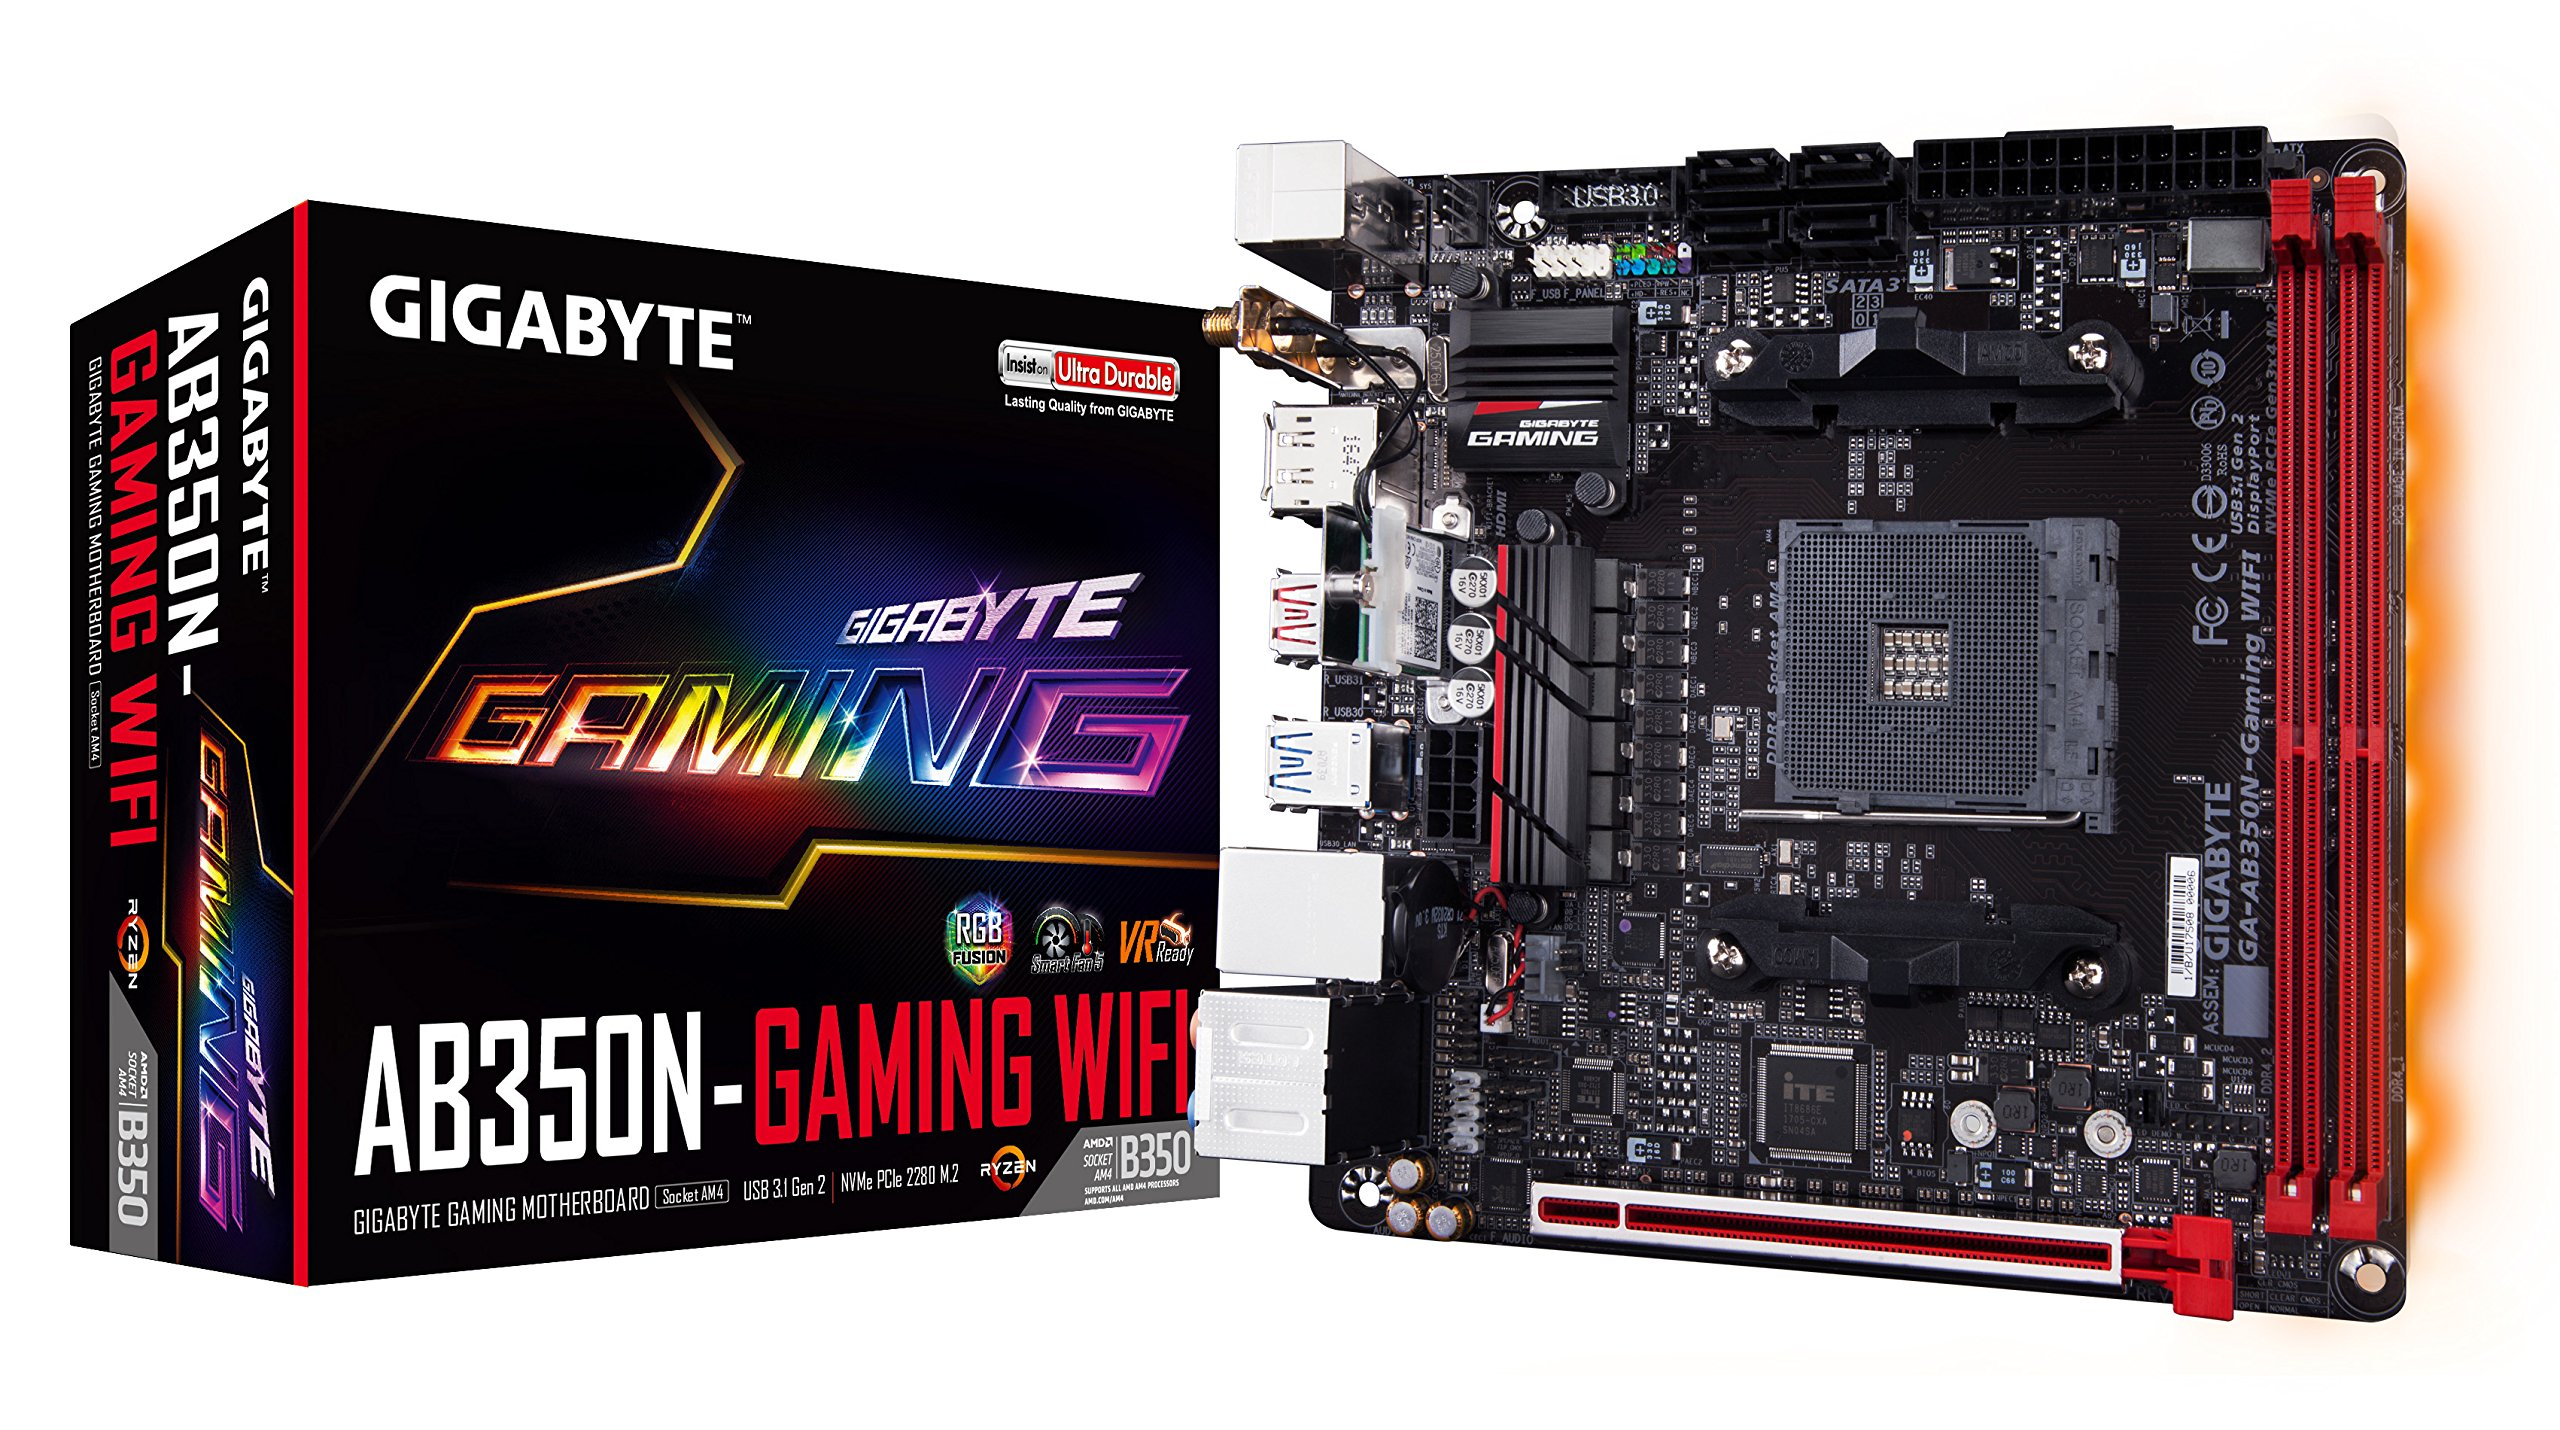 GIGABYTE GA-AB350N-Gaming WIFI (AMD/Ryzen AM4/B350/RGB Fusion/HDMI/DP/M.2/SATA/USB 3.1 Type-A/Wifi/Mini ITX/DDR4 Motherboard) by Gigabyte